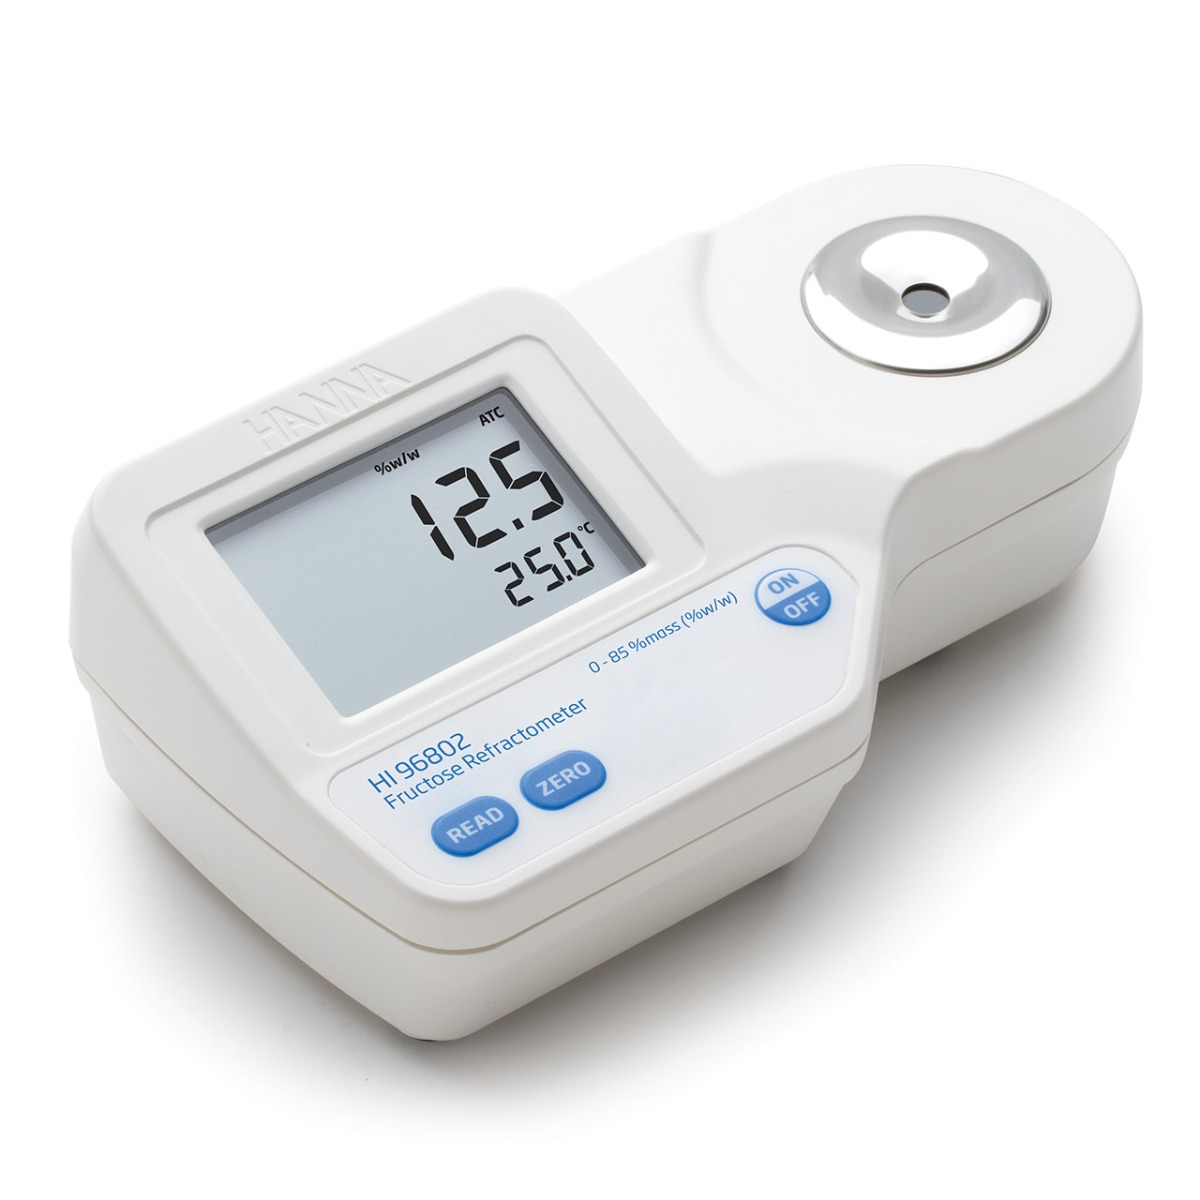 Digital Refractometer for % Fructose by Weight Analysis - HI96802